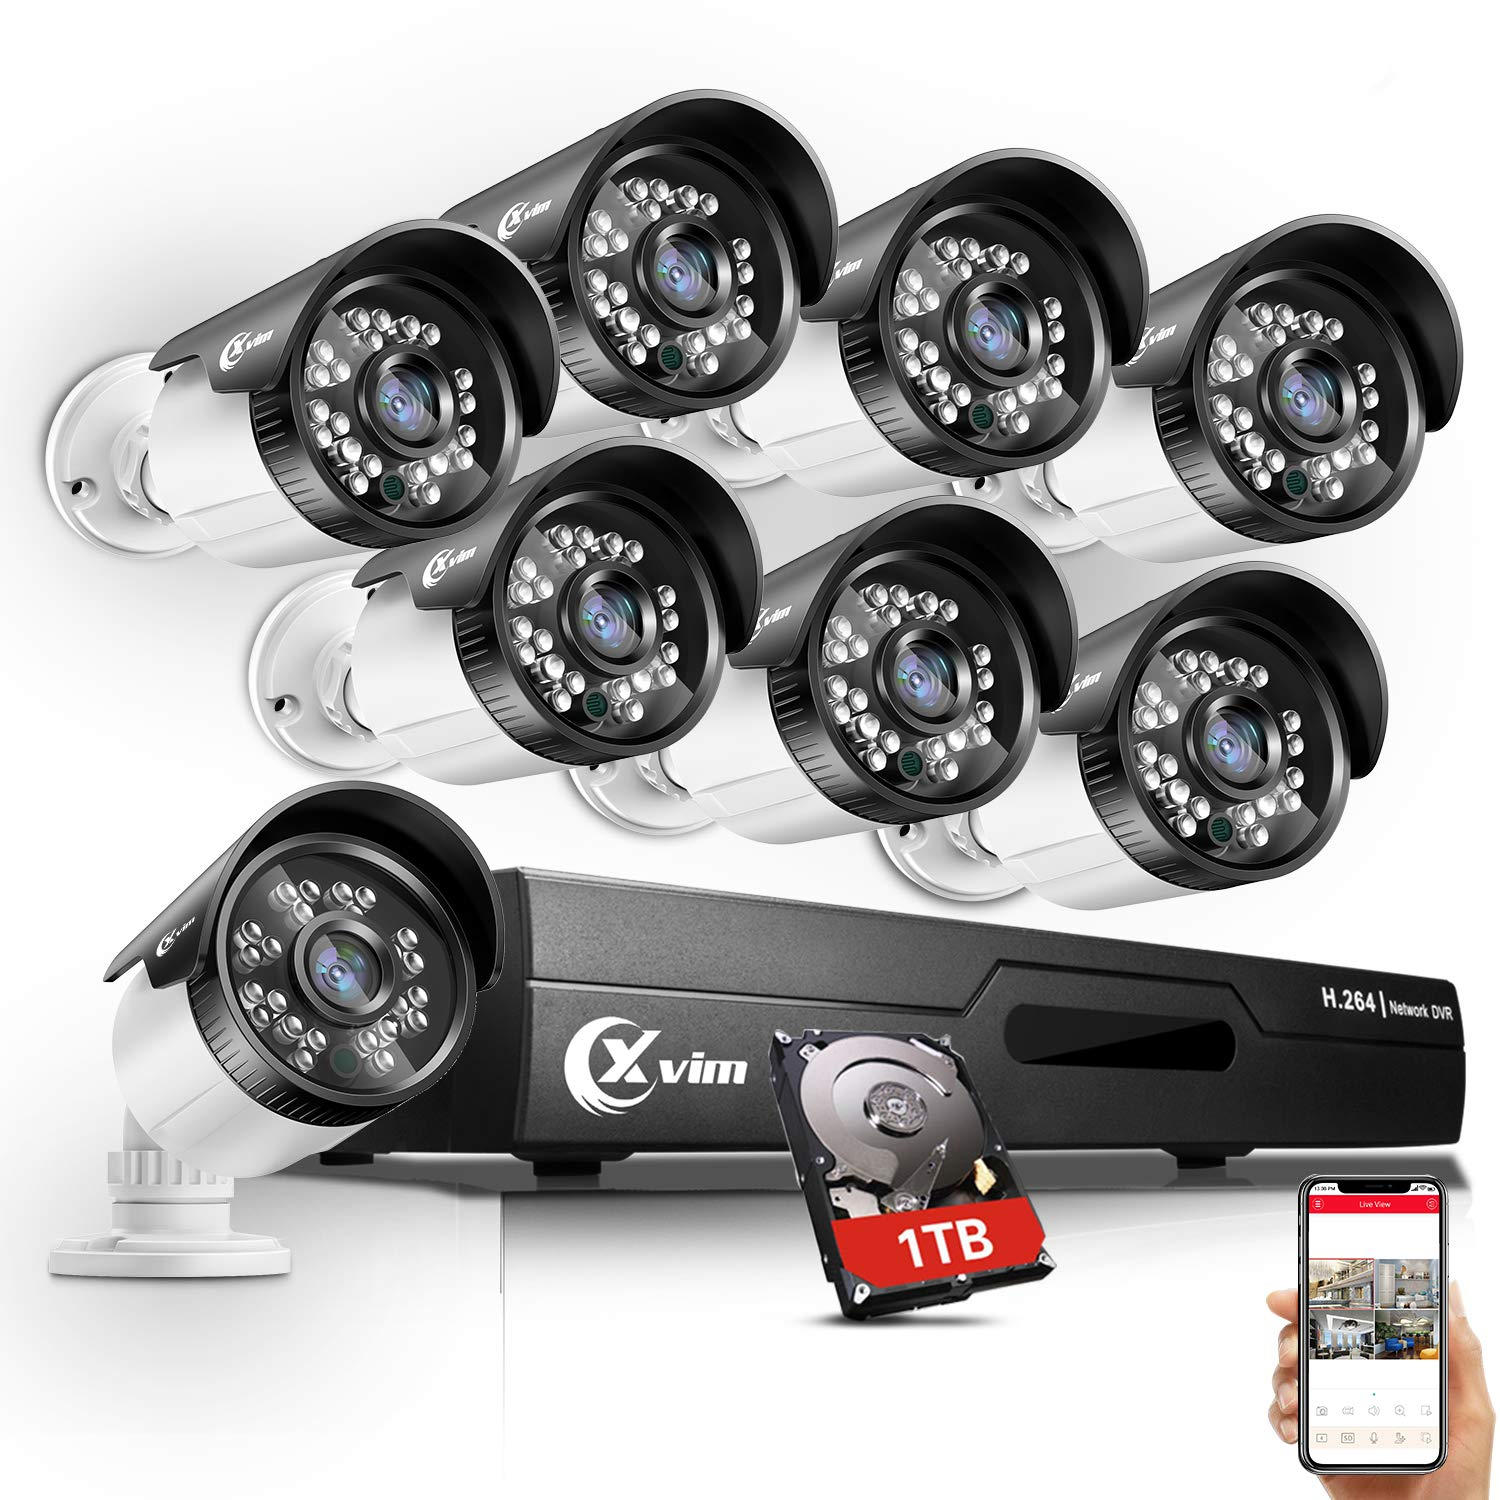 XVIM 720P Outdoor Home Security Camera System - 8 Channel 1080N DVR 1TB Hard Drive 8 HD Bullet Surveillance Cameras with Night Vision and Motion Detection by X-VIM